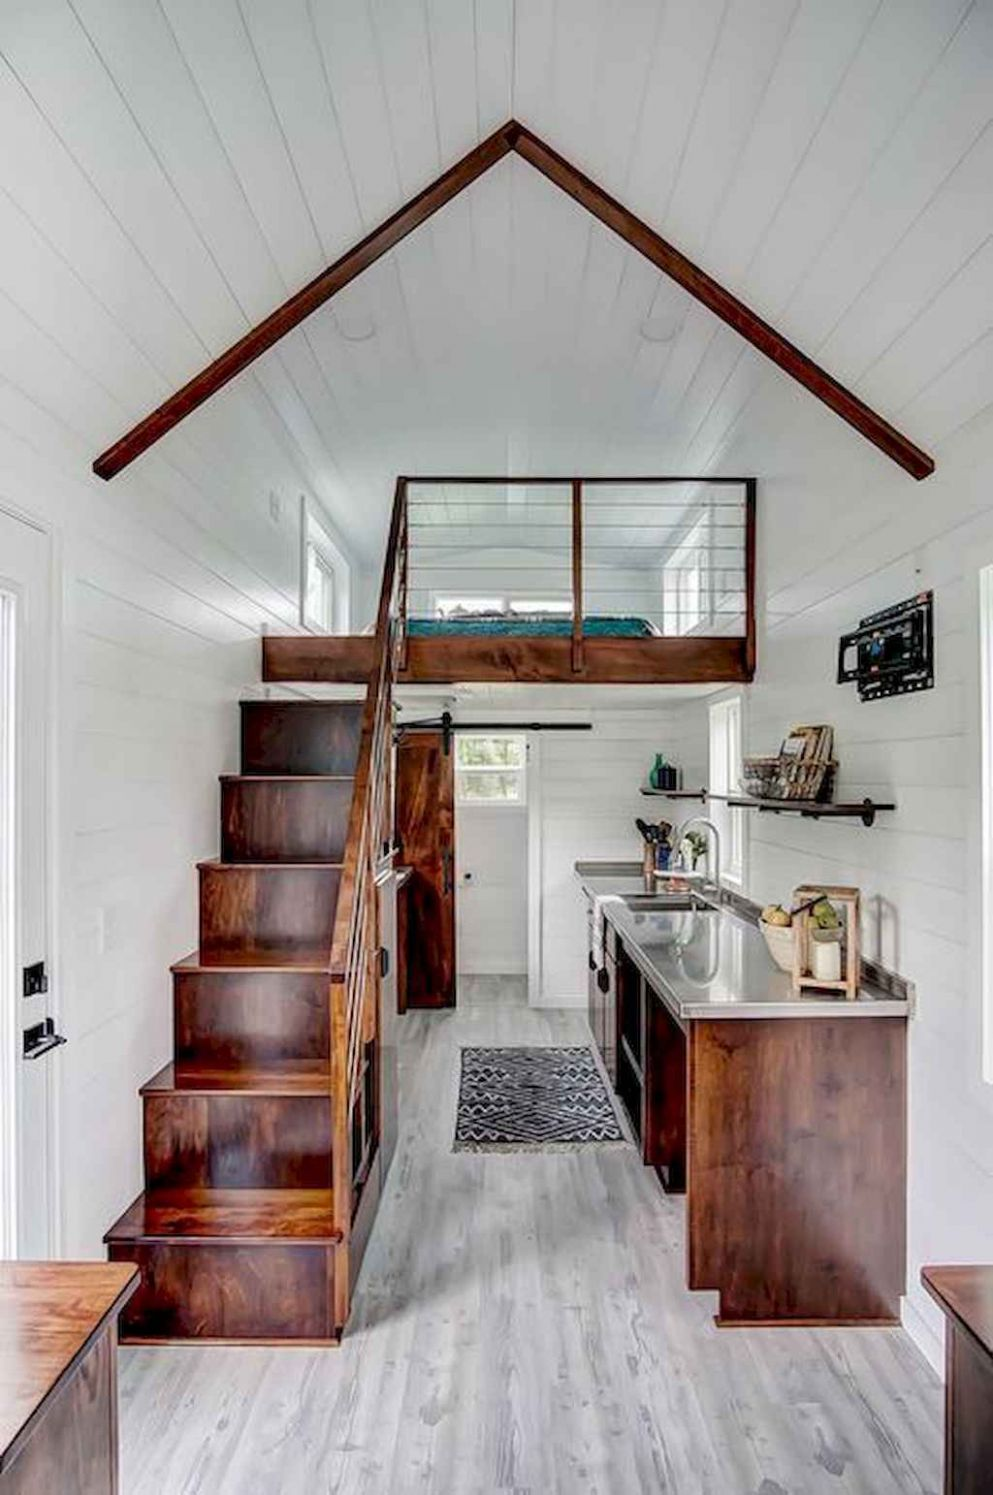 9 Awesome Tiny House Interior Design Ideas - Decoradeas - tiny house interior ideas